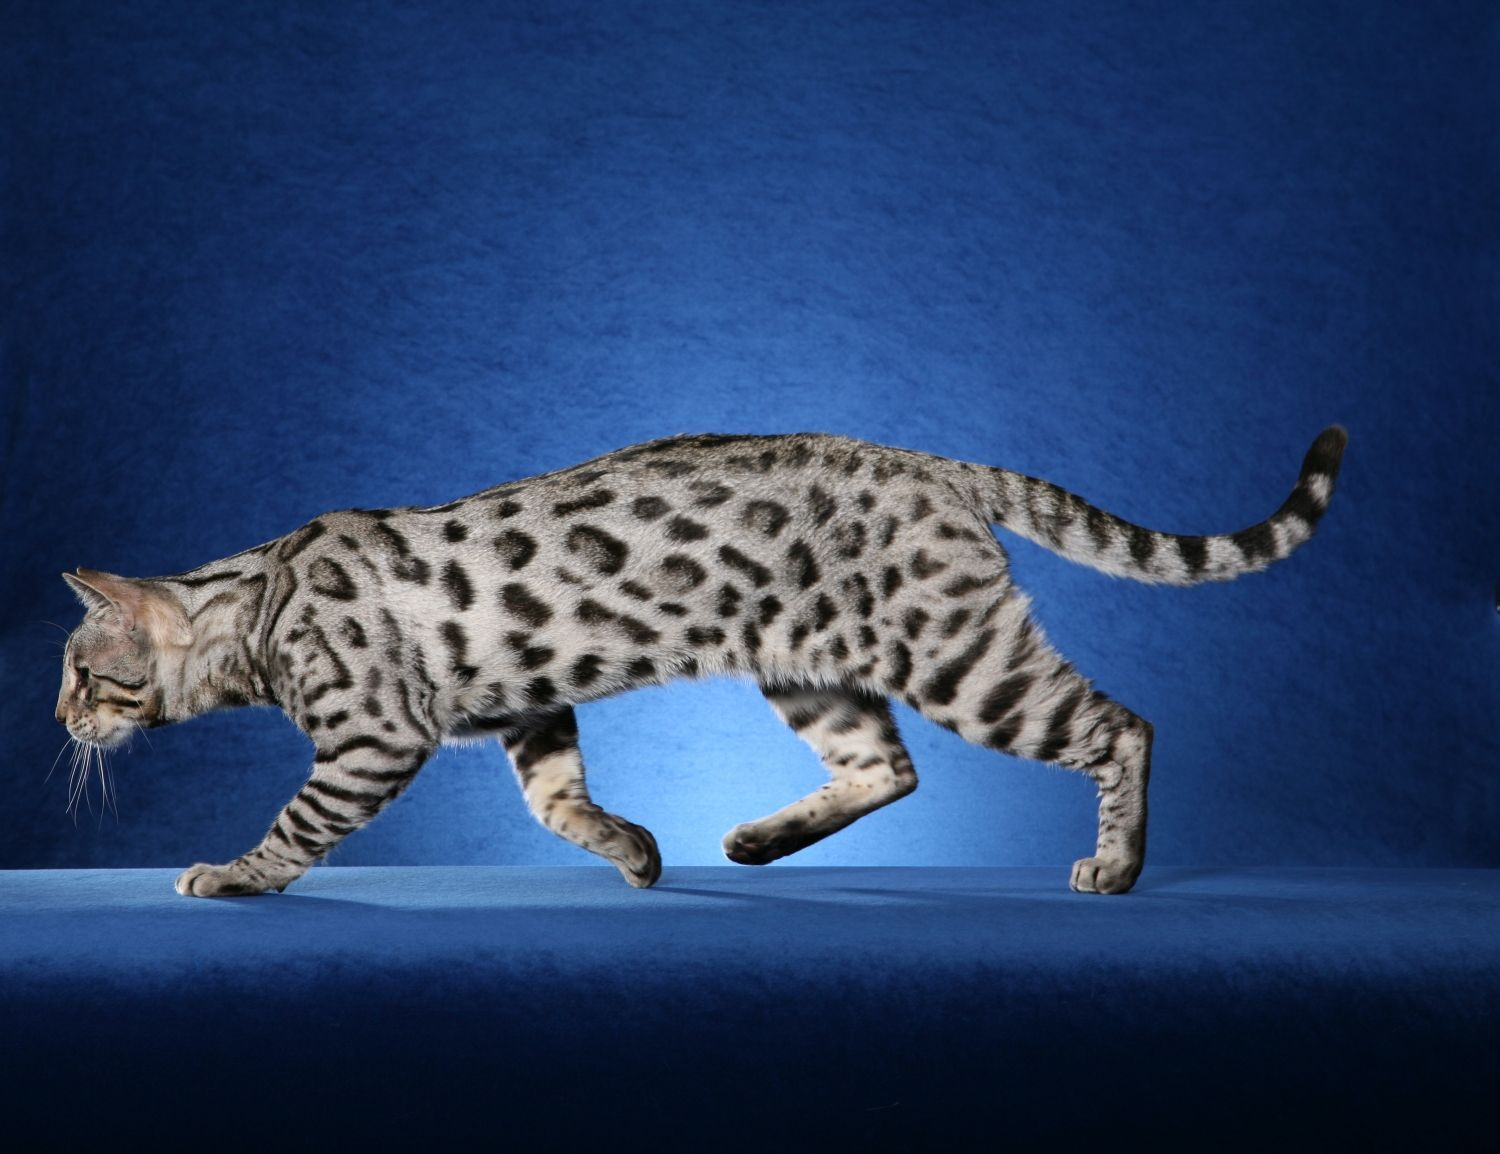 Image Detail For Silver Bengal Kittens For Sale Pet Breeder Show Quality Bengals Pinterest Bengal Kitten Silver Bengal Cat Bengal Cat